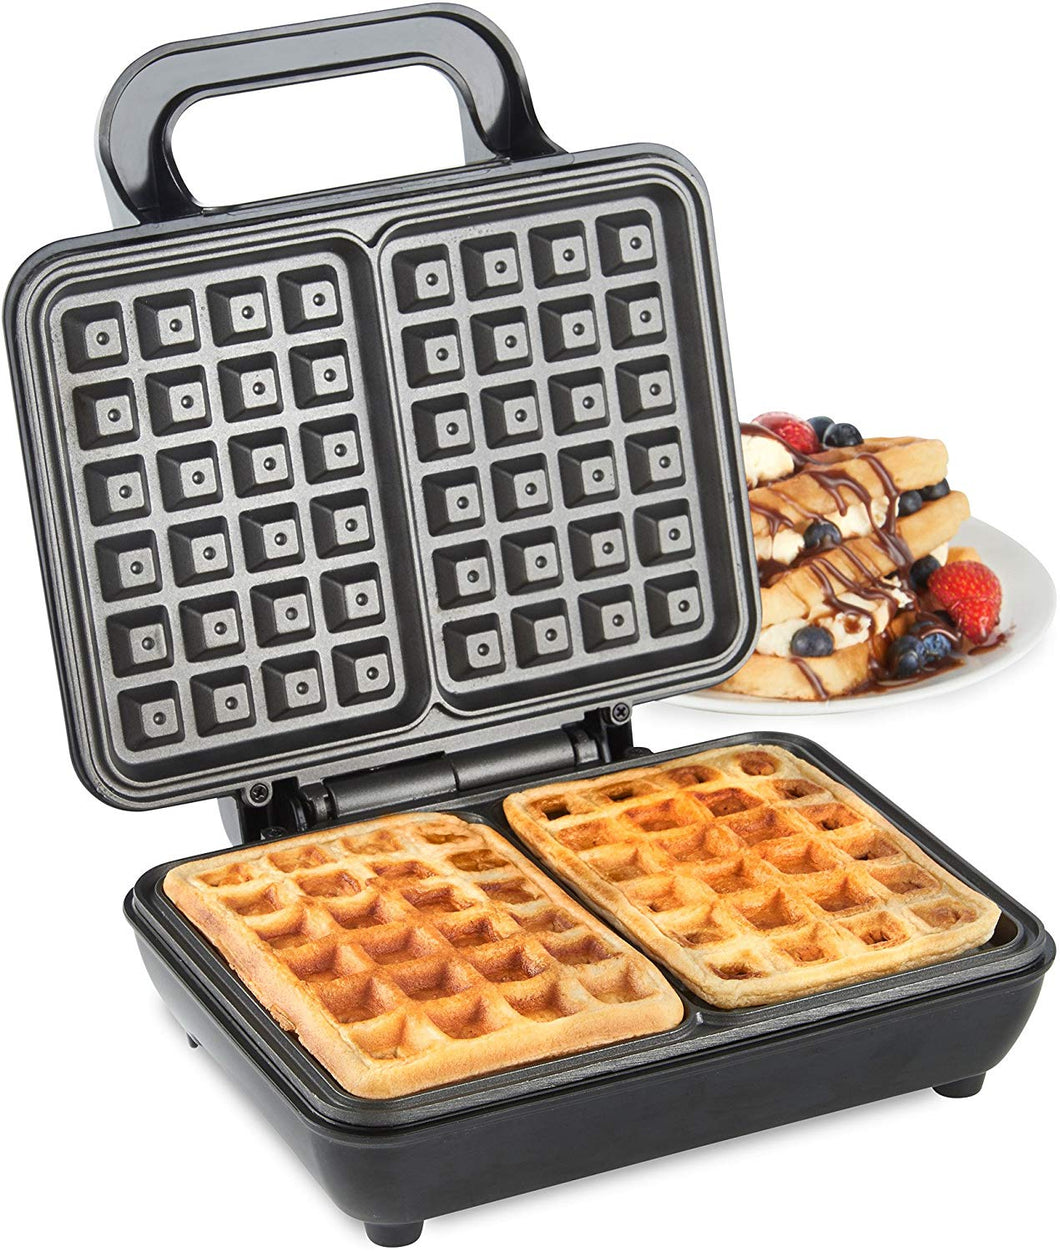 VonShef Waffle Maker, Stick Belgian Waffle Easy Clean Non-Stick Coated Plates & Automatic Temperature Control, Compact Stainless Steel Design – 500W Dual - iBuy Africa